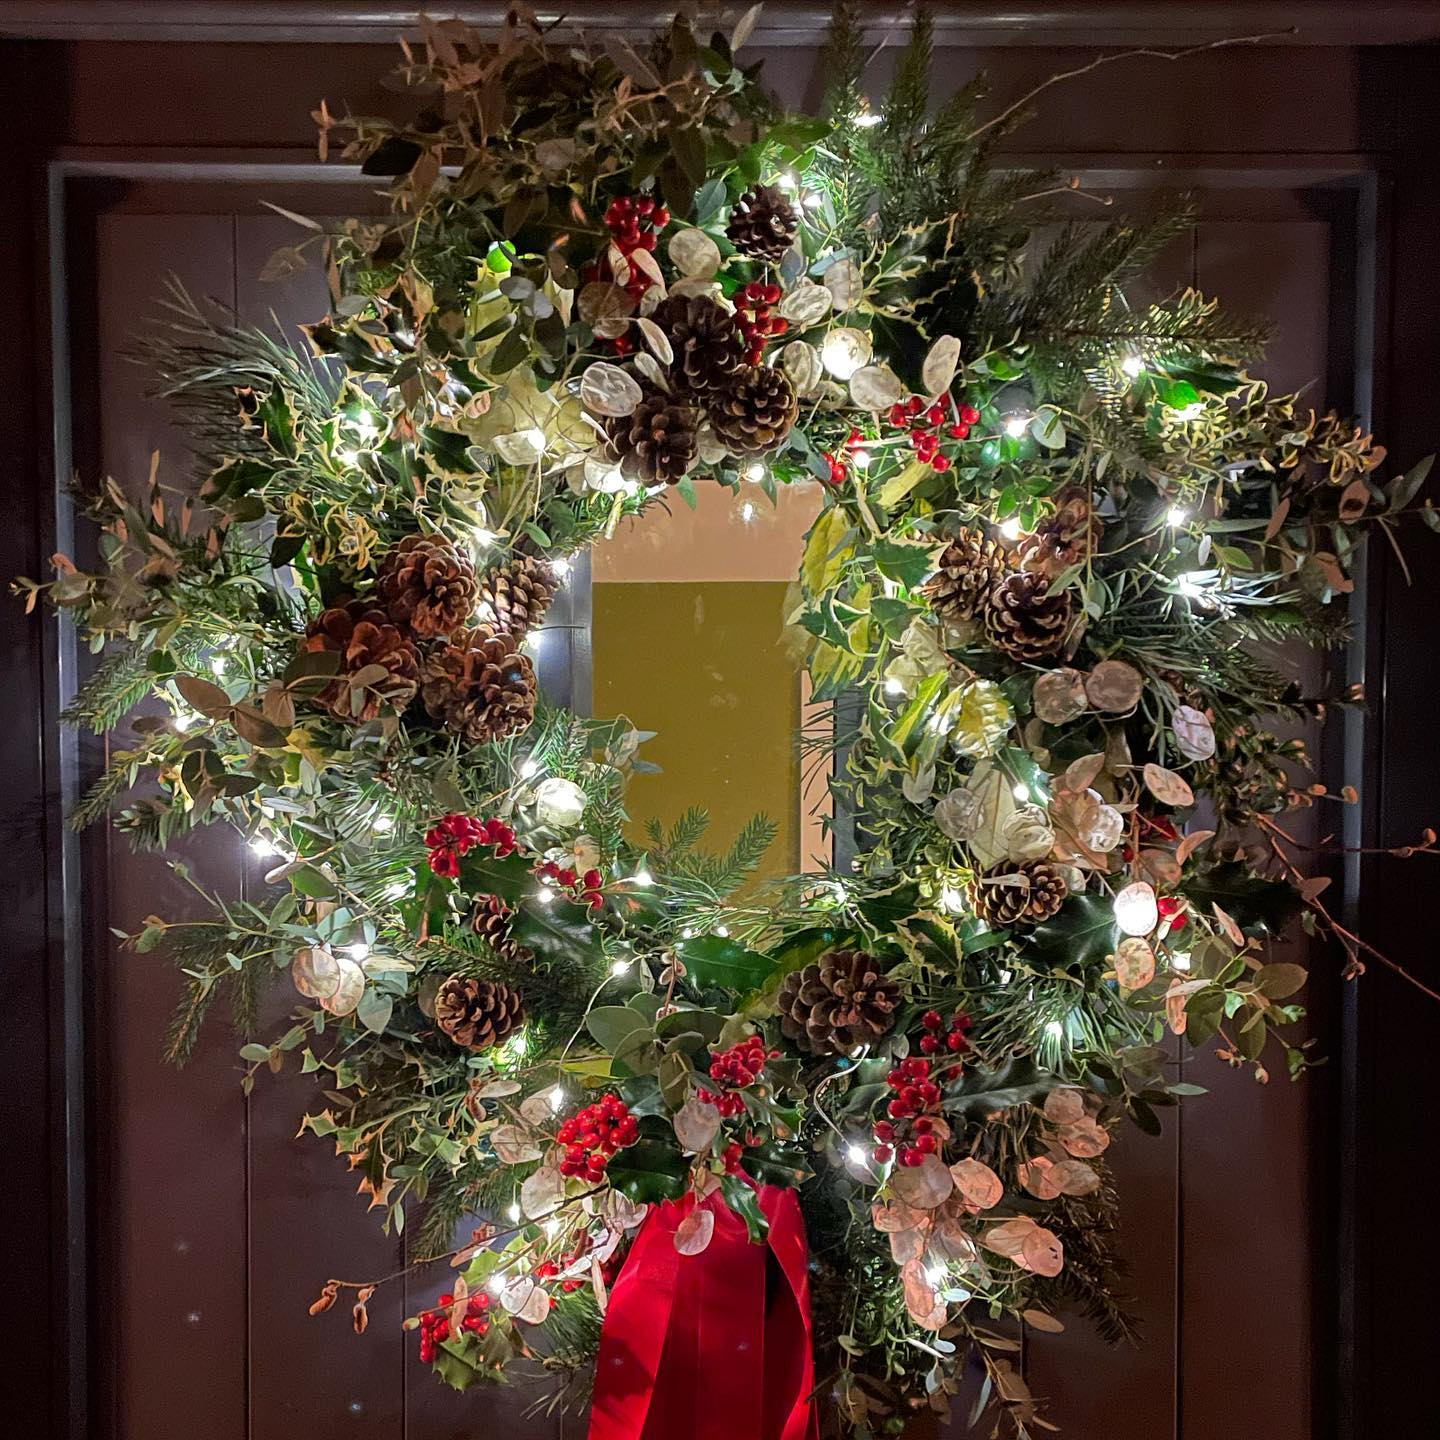 Christmas wreath 2020... the Prosecco may have hampered our productivity as it ended up being an all night affair! Went quite traditional this year as the Holly bush at the bottom of the garden is smothered with berries and deserved to be the star. Lots of evergreens, yew, pine, fir and eucalyptus. Pine Cones collected in the summer and Honesty seed heads like one hundred shimmering moons. Variegated foliage is the icing on the wreath this year with wonderful Ilex aquifolium 'Argentea Marginata', Elaeagnus ebbingei Gilt Edge and Luma apiculata (Myrtus) Glanleam Gold. Anyone tells you variegated foliage is hideous... ignore, ignore, Ignore!